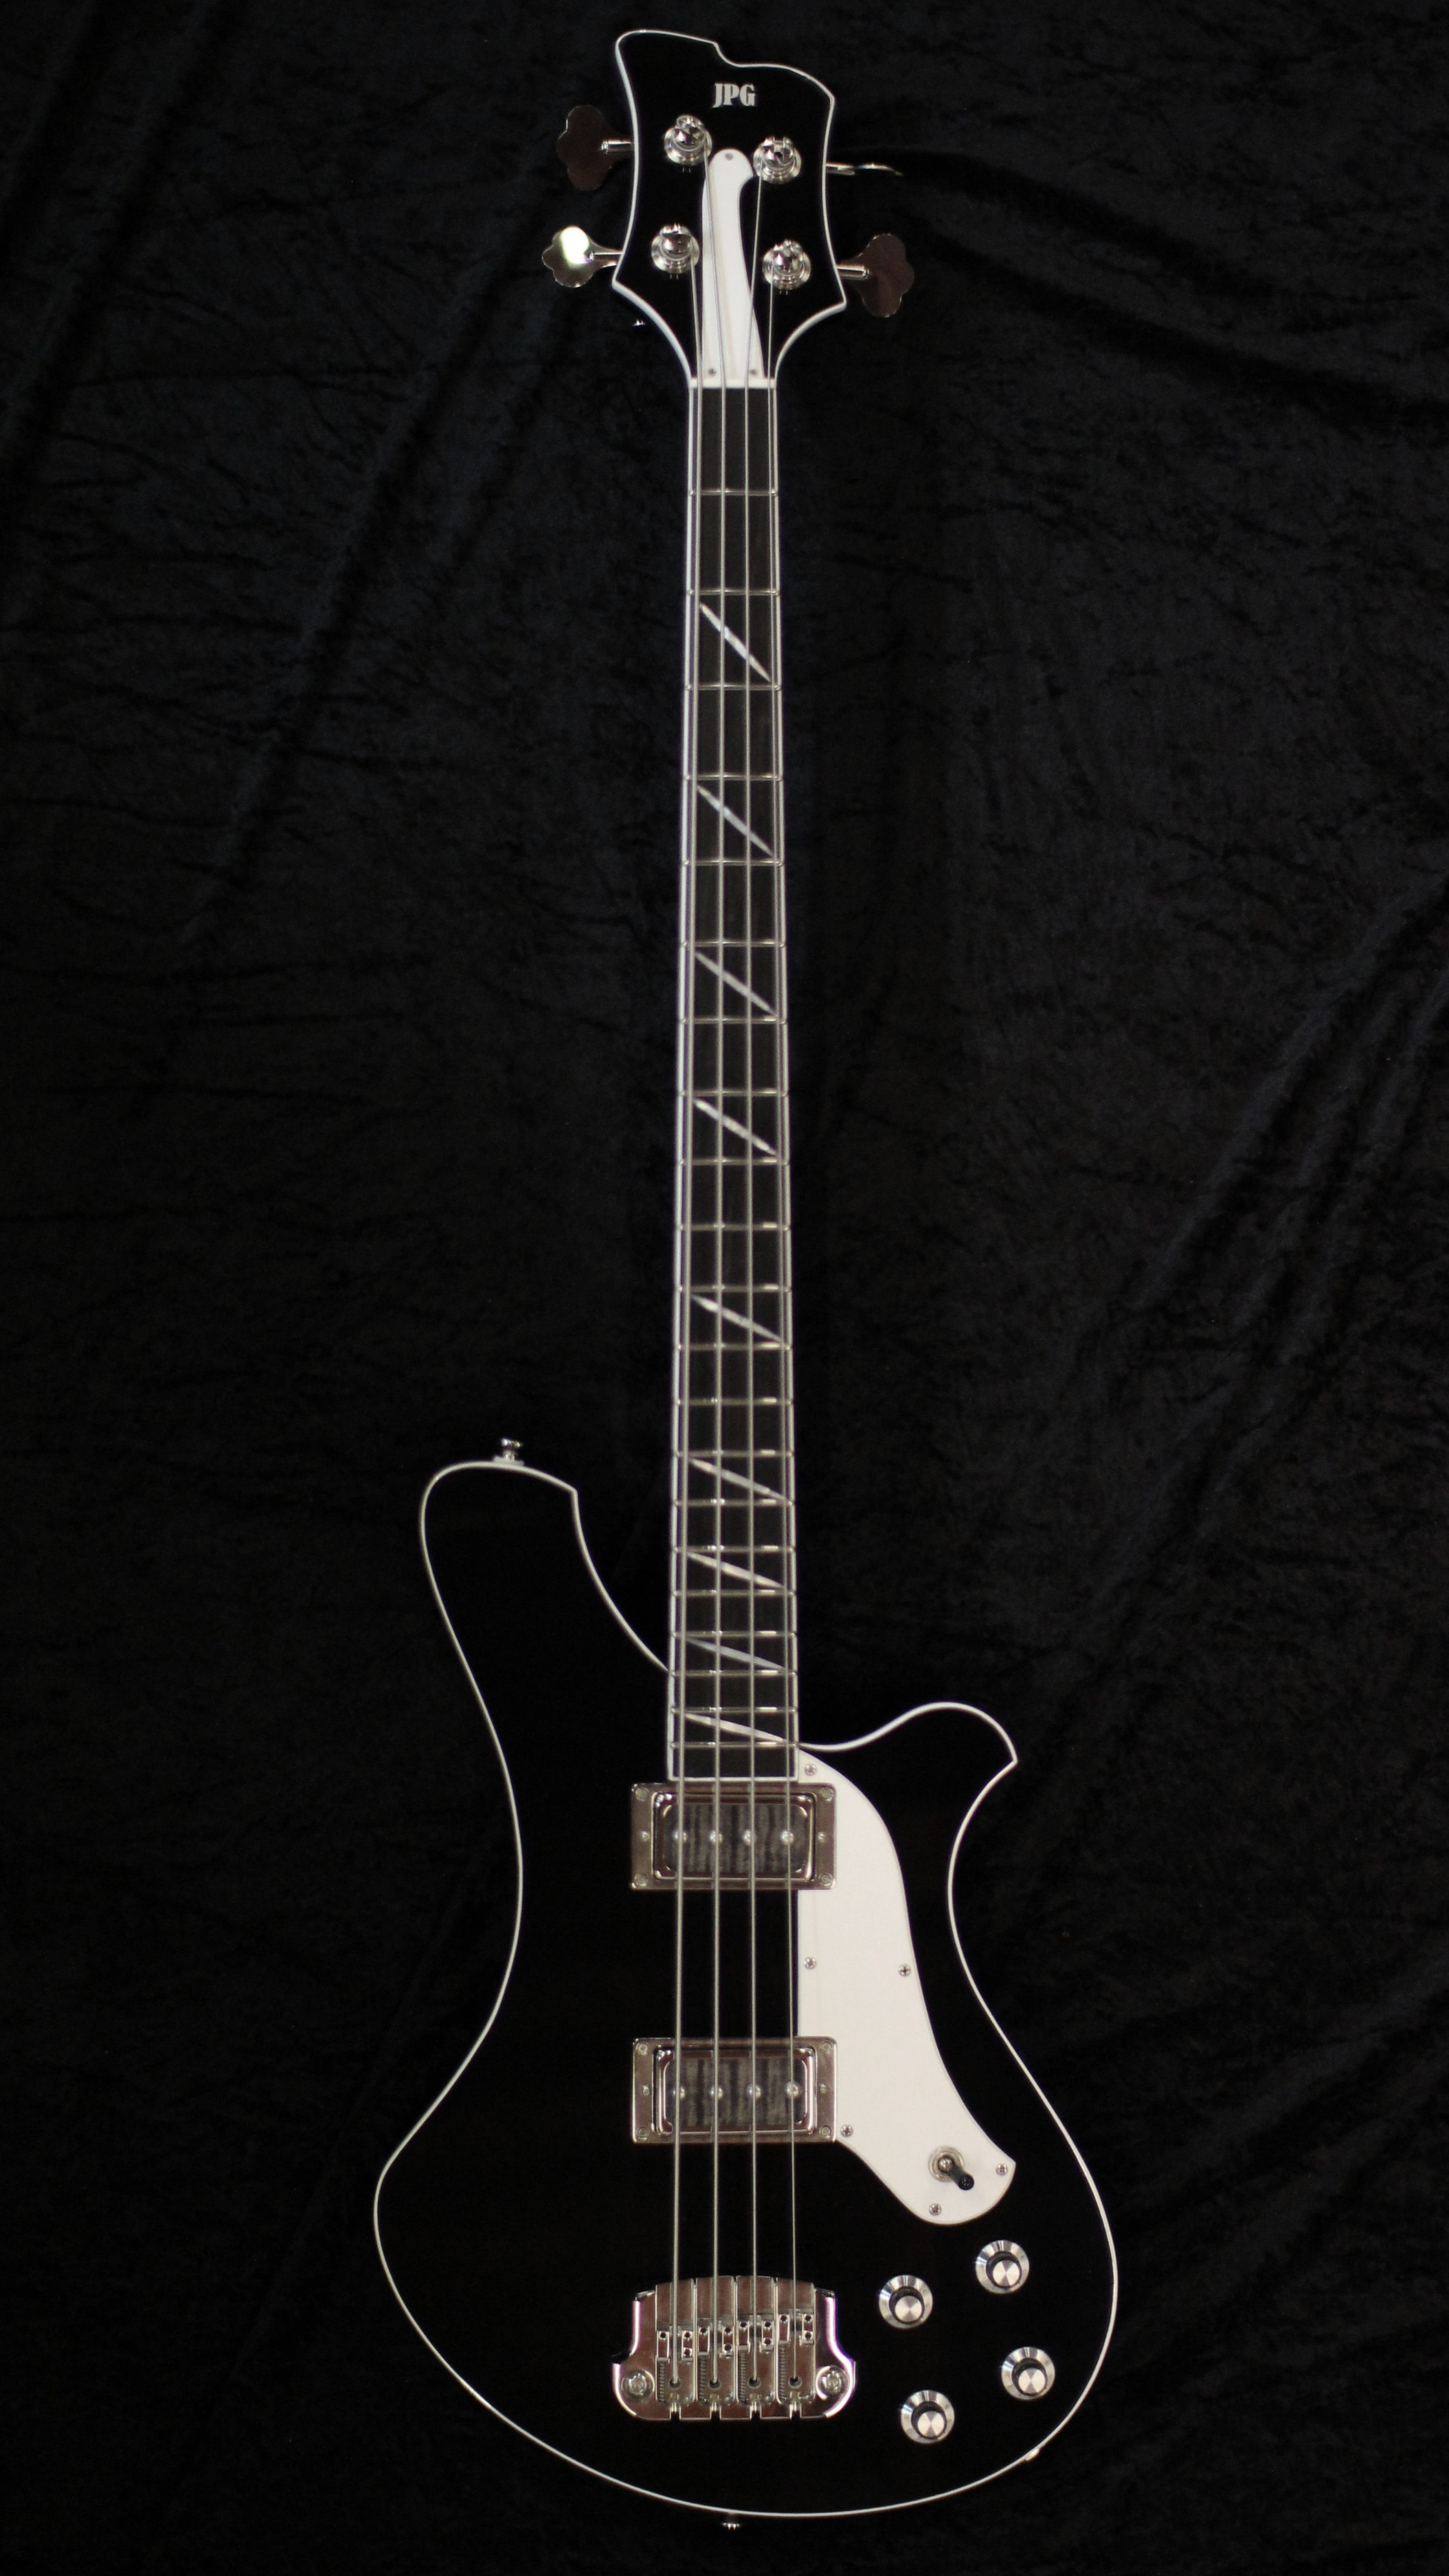 The Pusher - Inspired by the vintage Basses played by my heroes, but with beautiful sleek modern curves.Starting Price £2,700